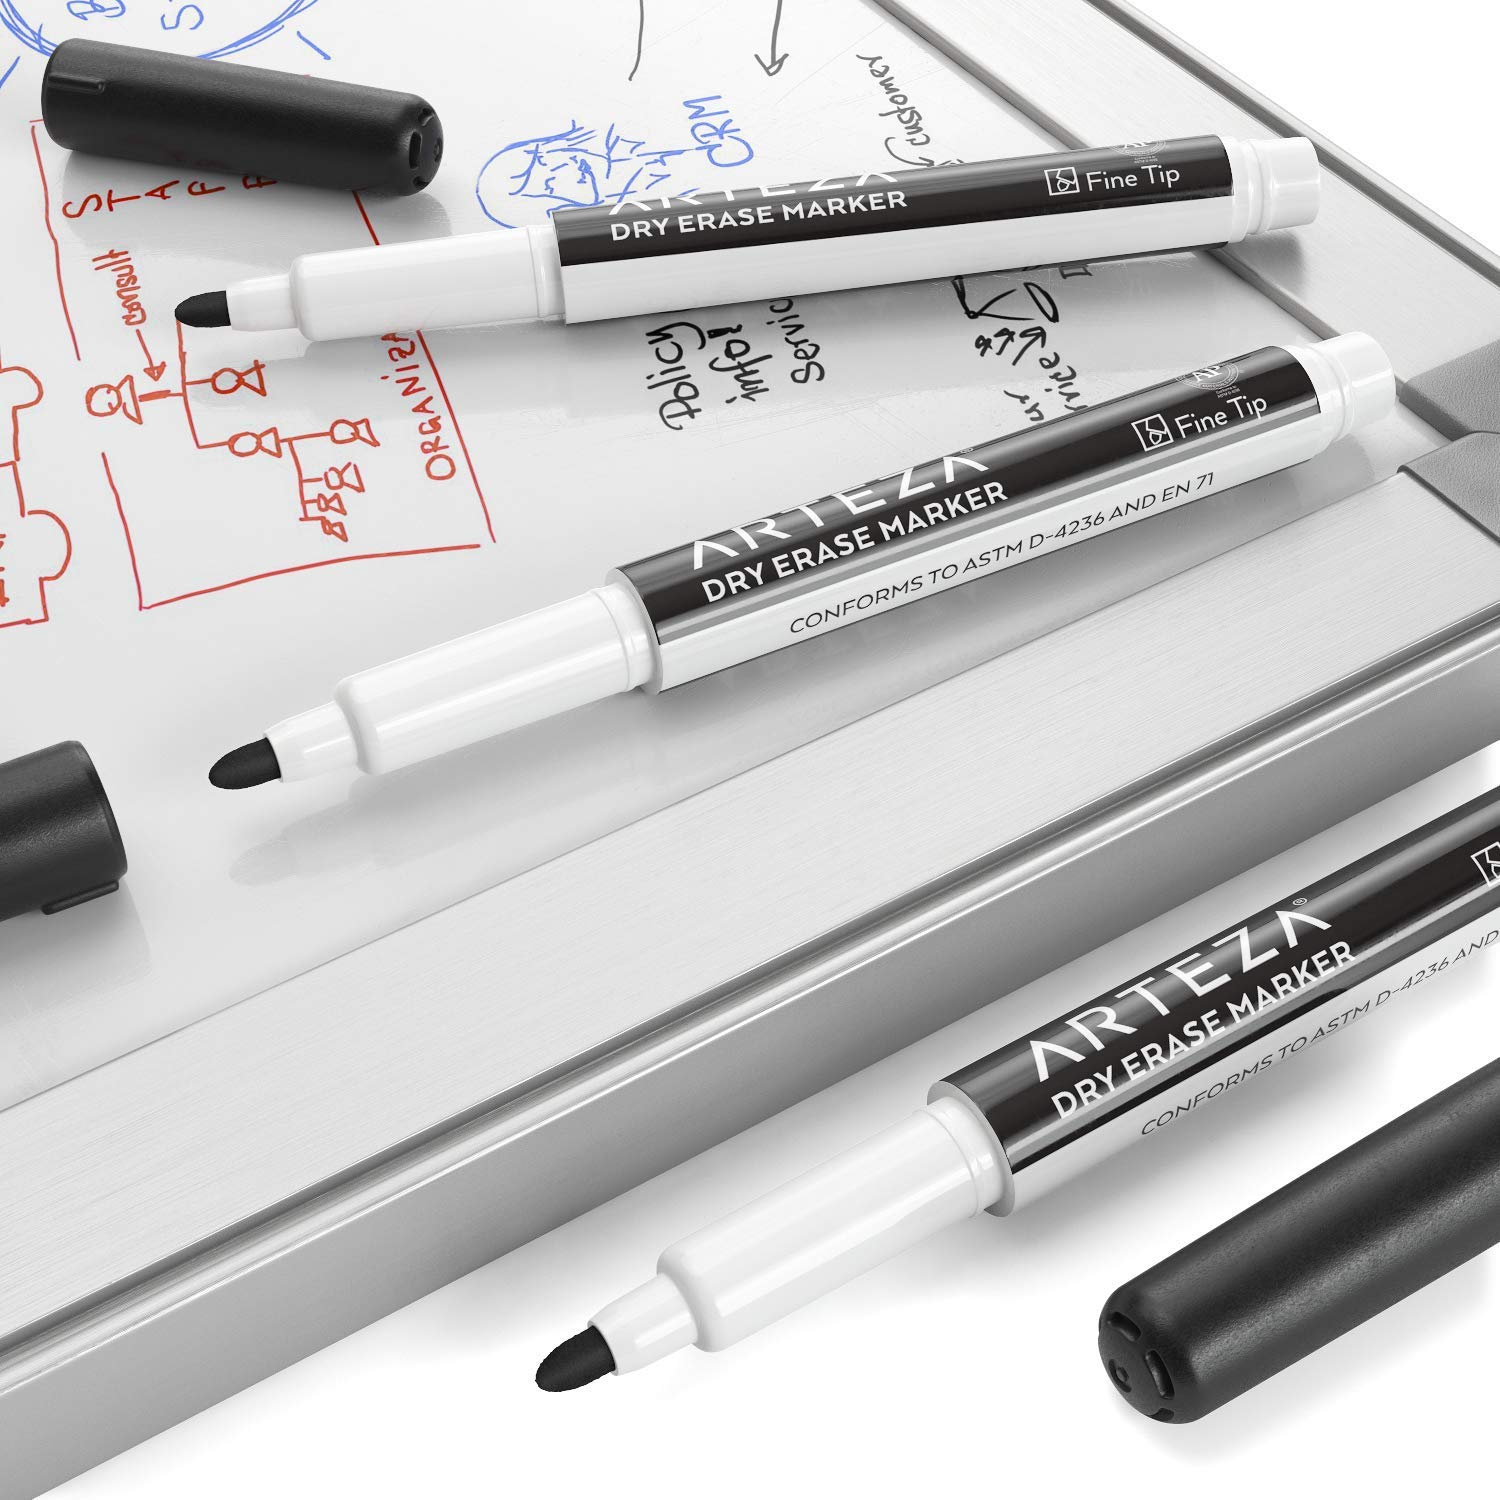 ARTEZA Dry Erase Markers, Bulk Pack of 52 (with Fine Tip), Black Color with Low-Odor Ink, Whiteboard Pens is perfect for School, Office, or Home by ARTEZA (Image #3)